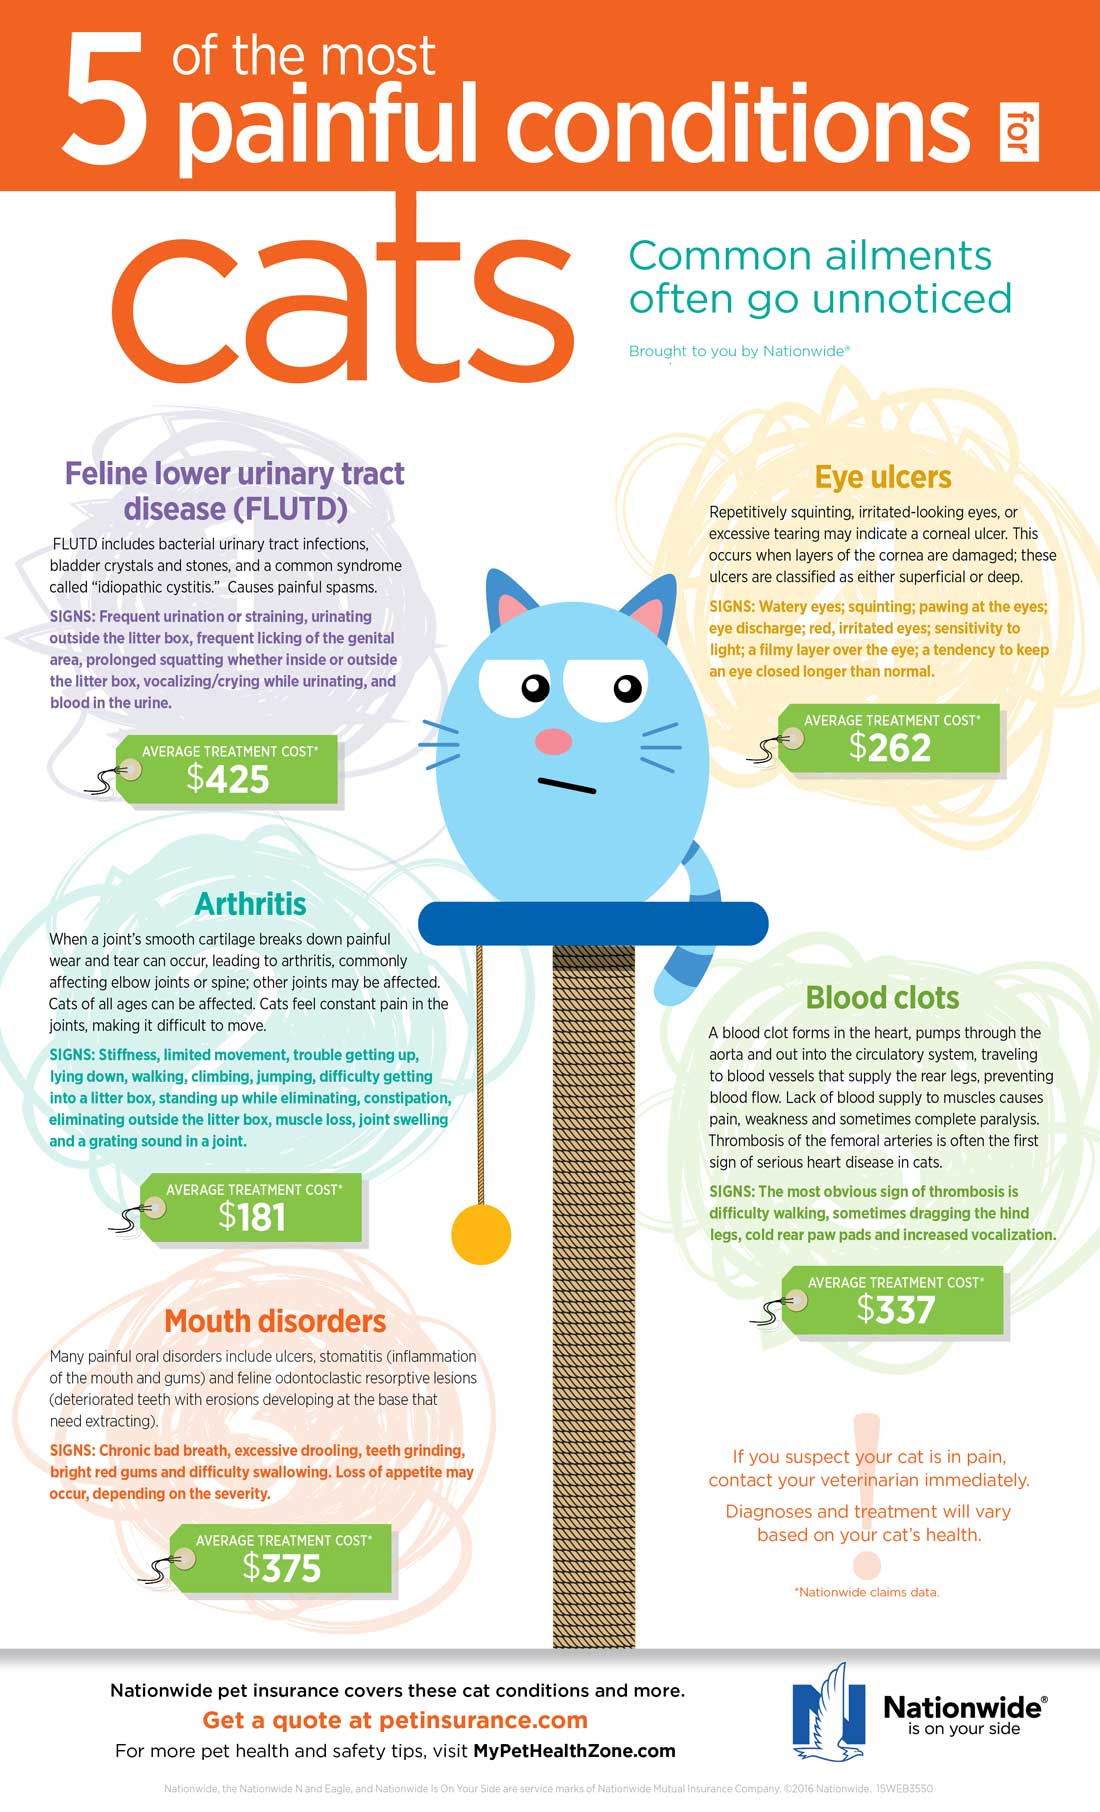 5-Painful-Conditions-for-Cats-Infographic-1100